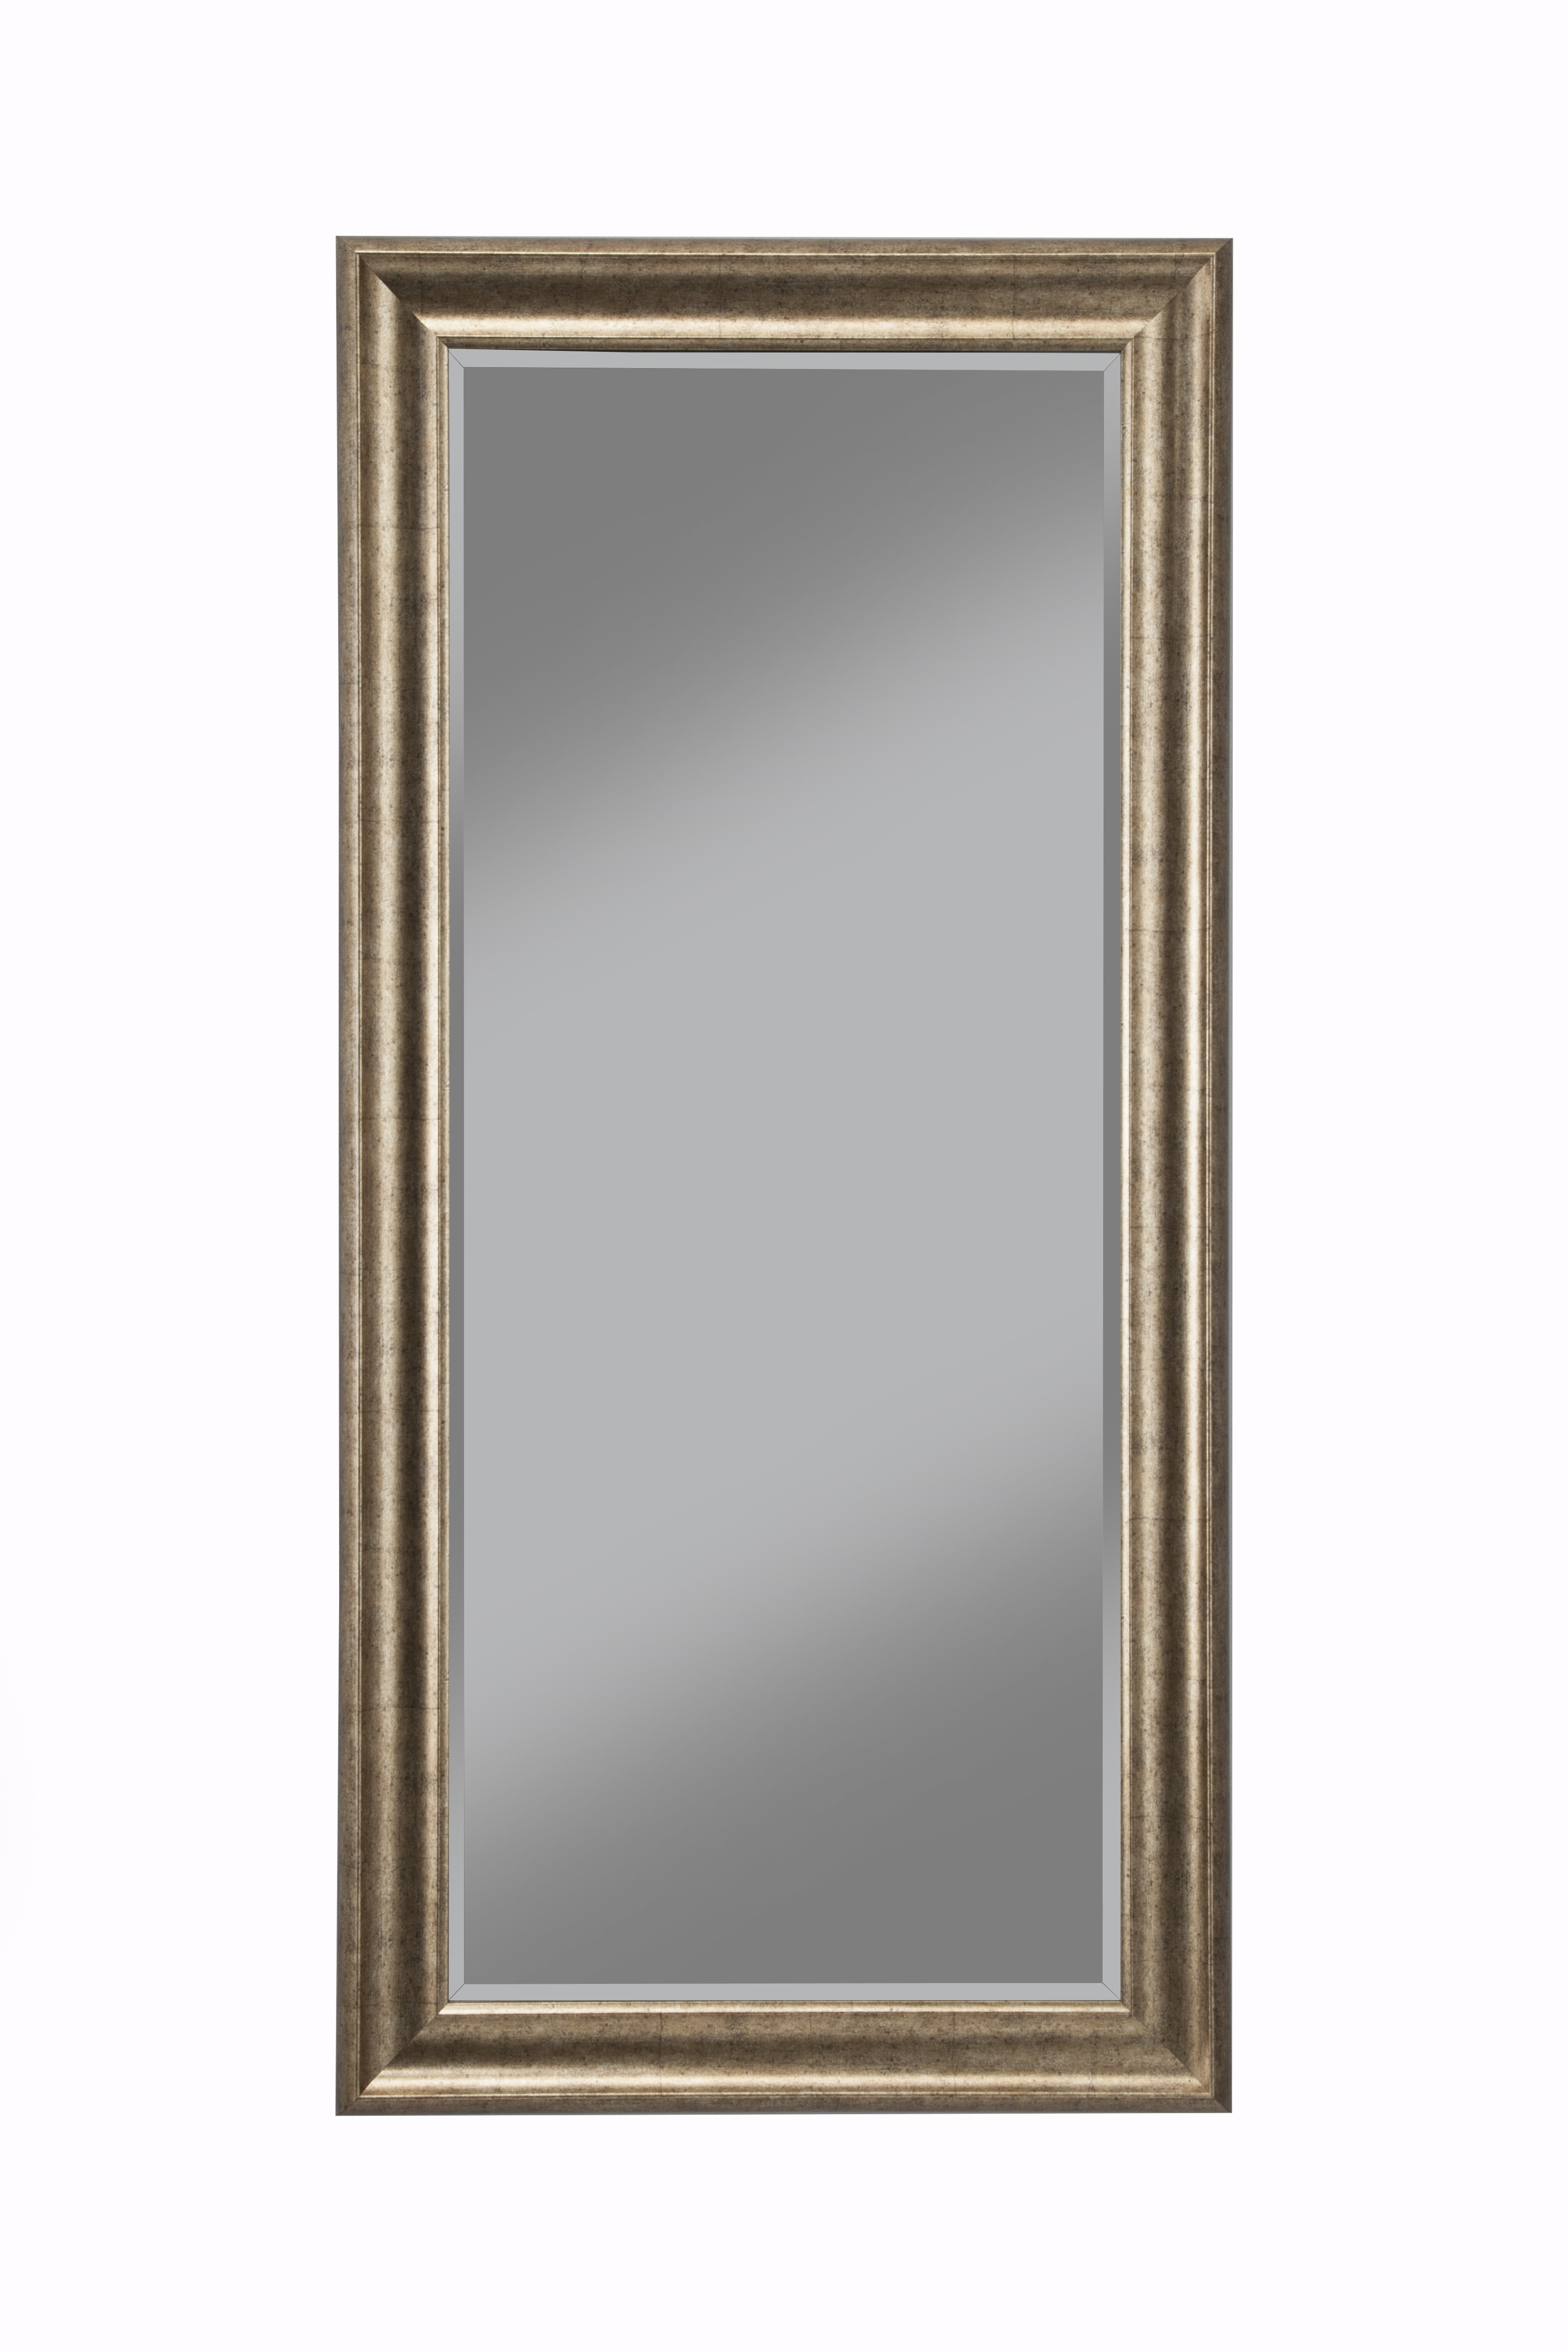 Modern Gold Wall Mirrors | Allmodern For Lugo Rectangle Accent Mirrors (Image 15 of 20)